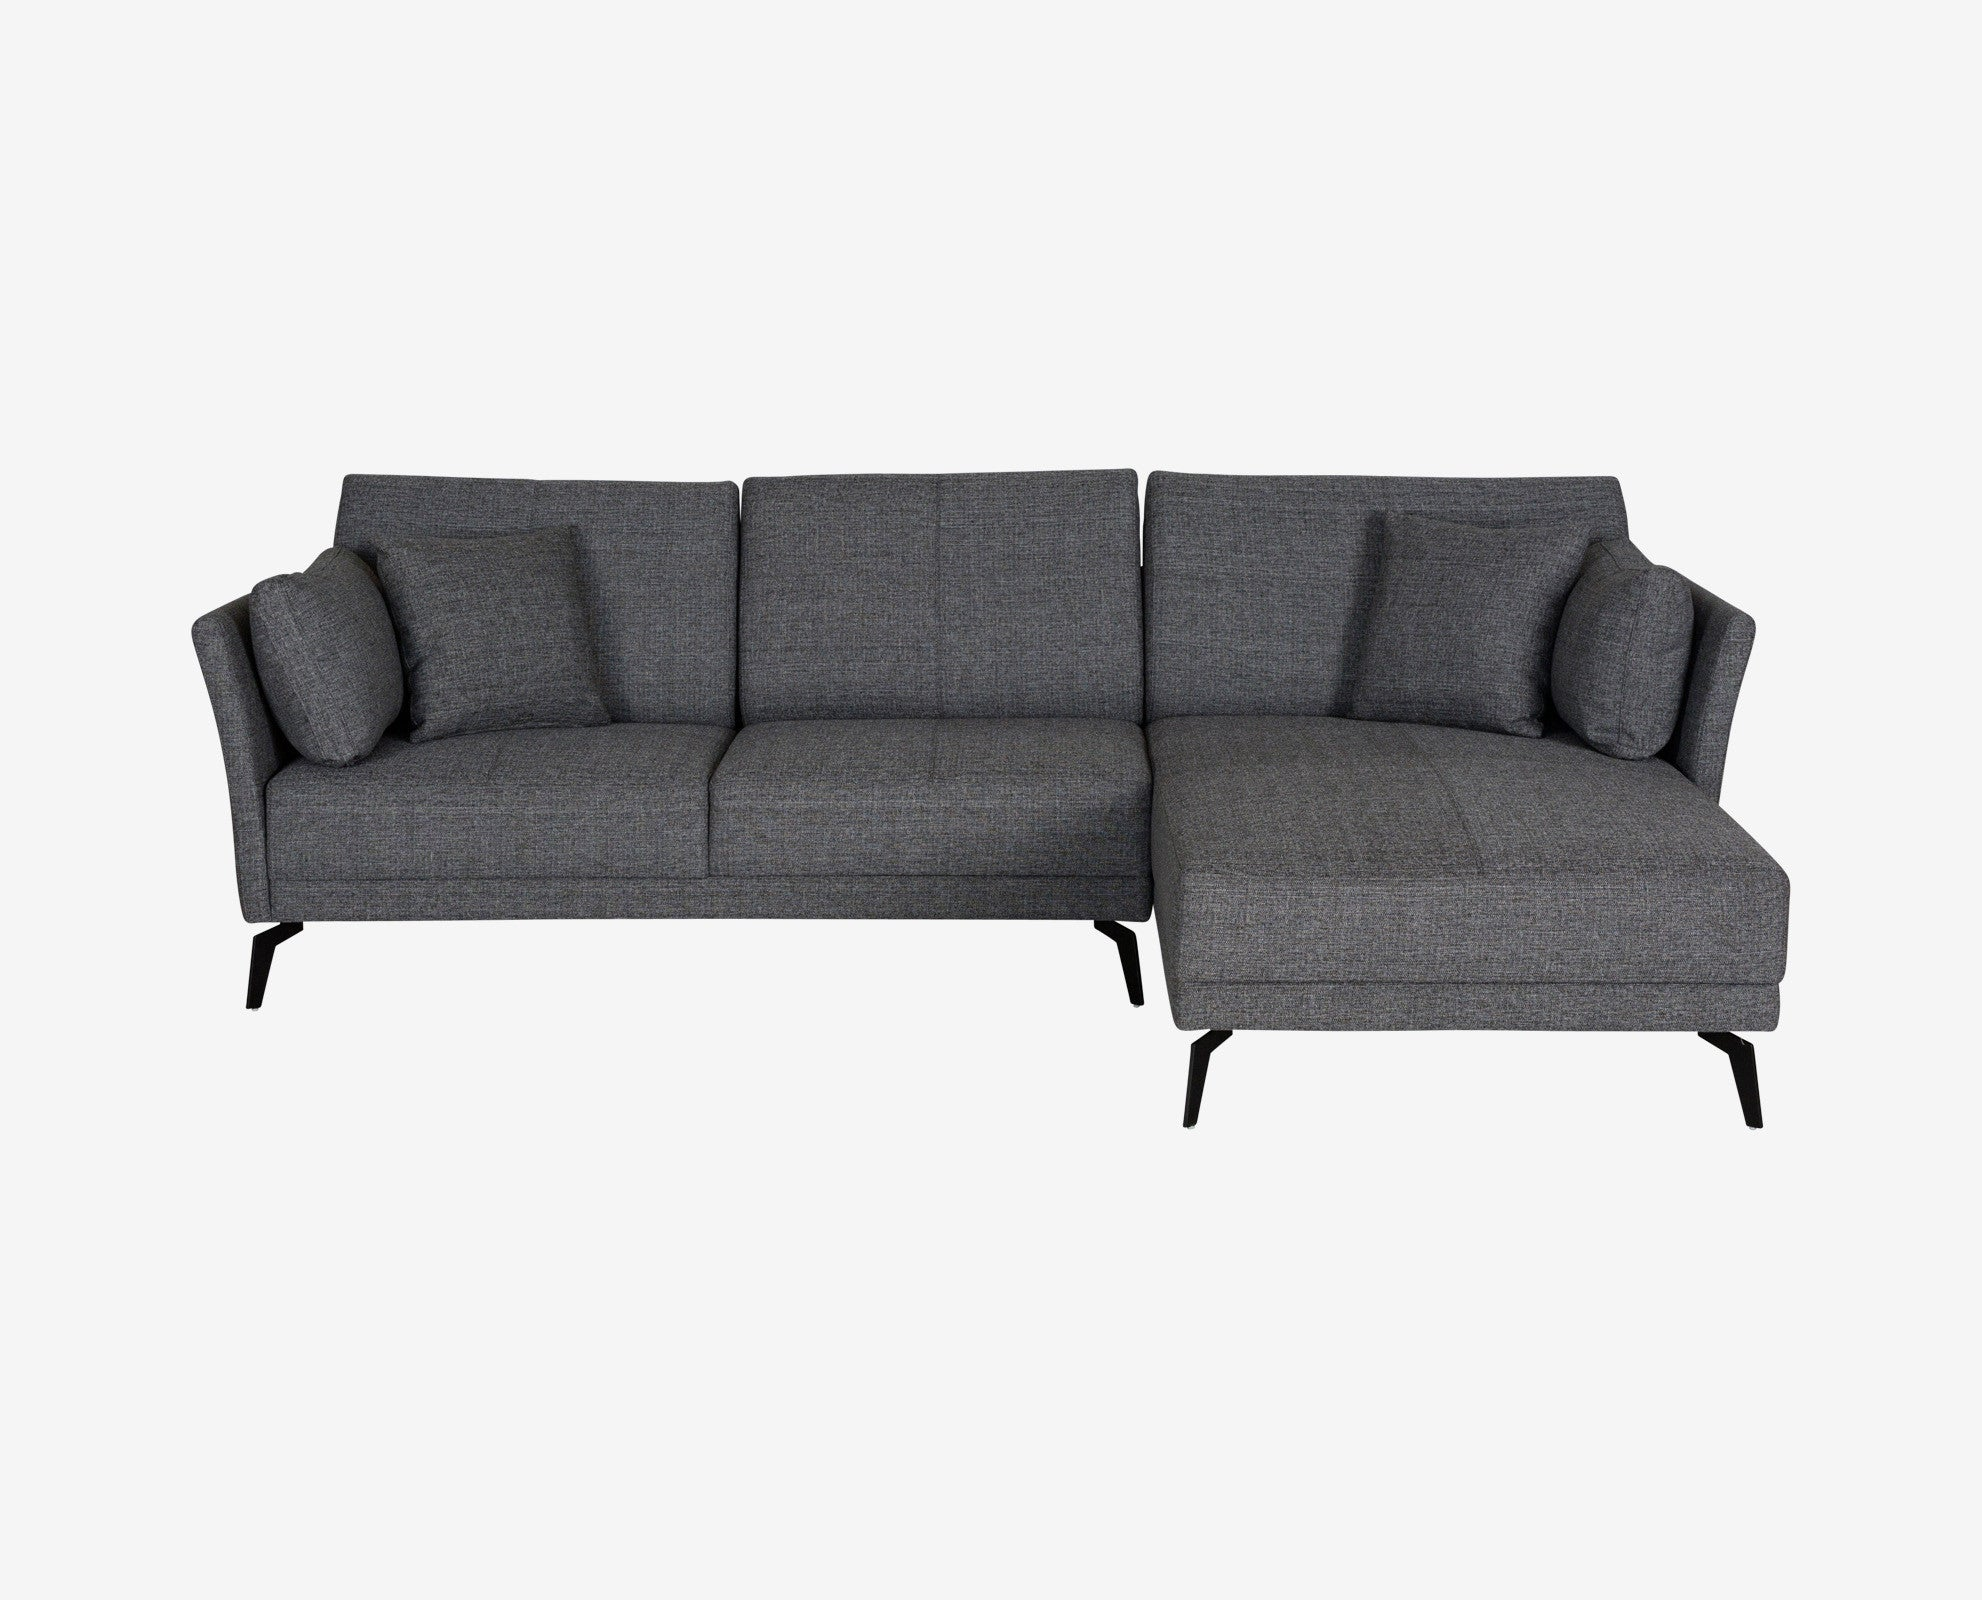 Elegant Renata Sectional Right Chaise Charcoal